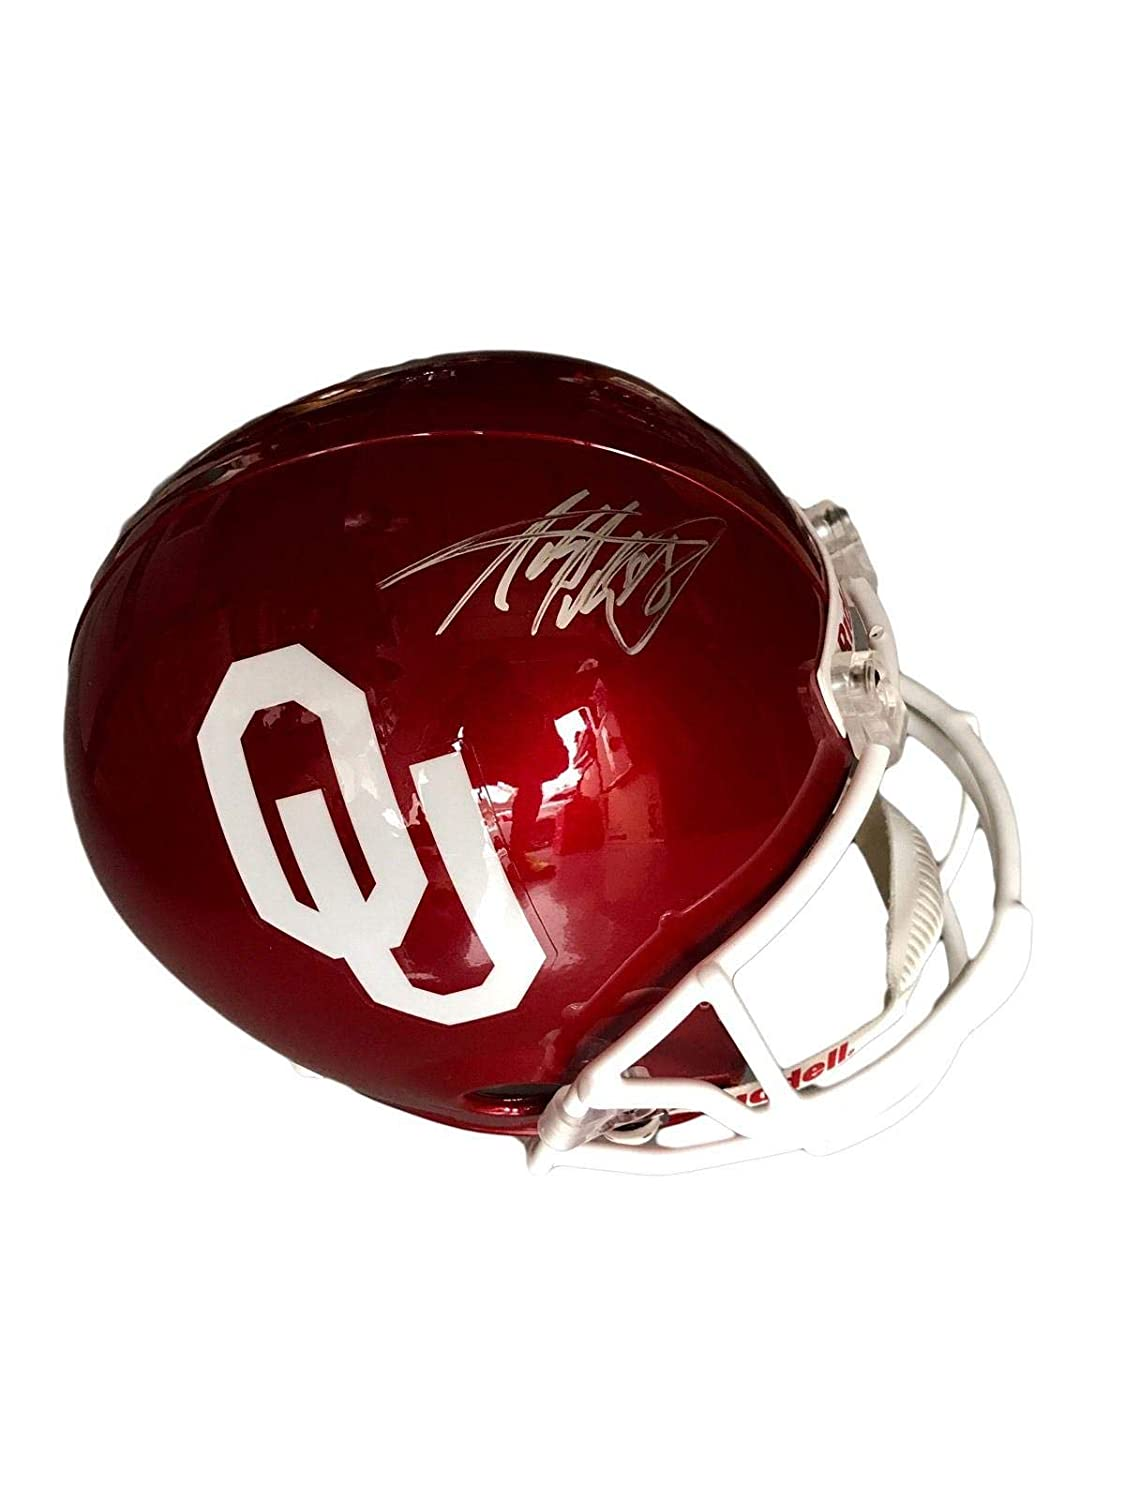 Amazon.com  Adrian Peterson Oklahoma Sooners Signed Full Size Helmet - PSA  DNA Certified - Autographed College Helmets  Sports Collectibles 9ad0446b8